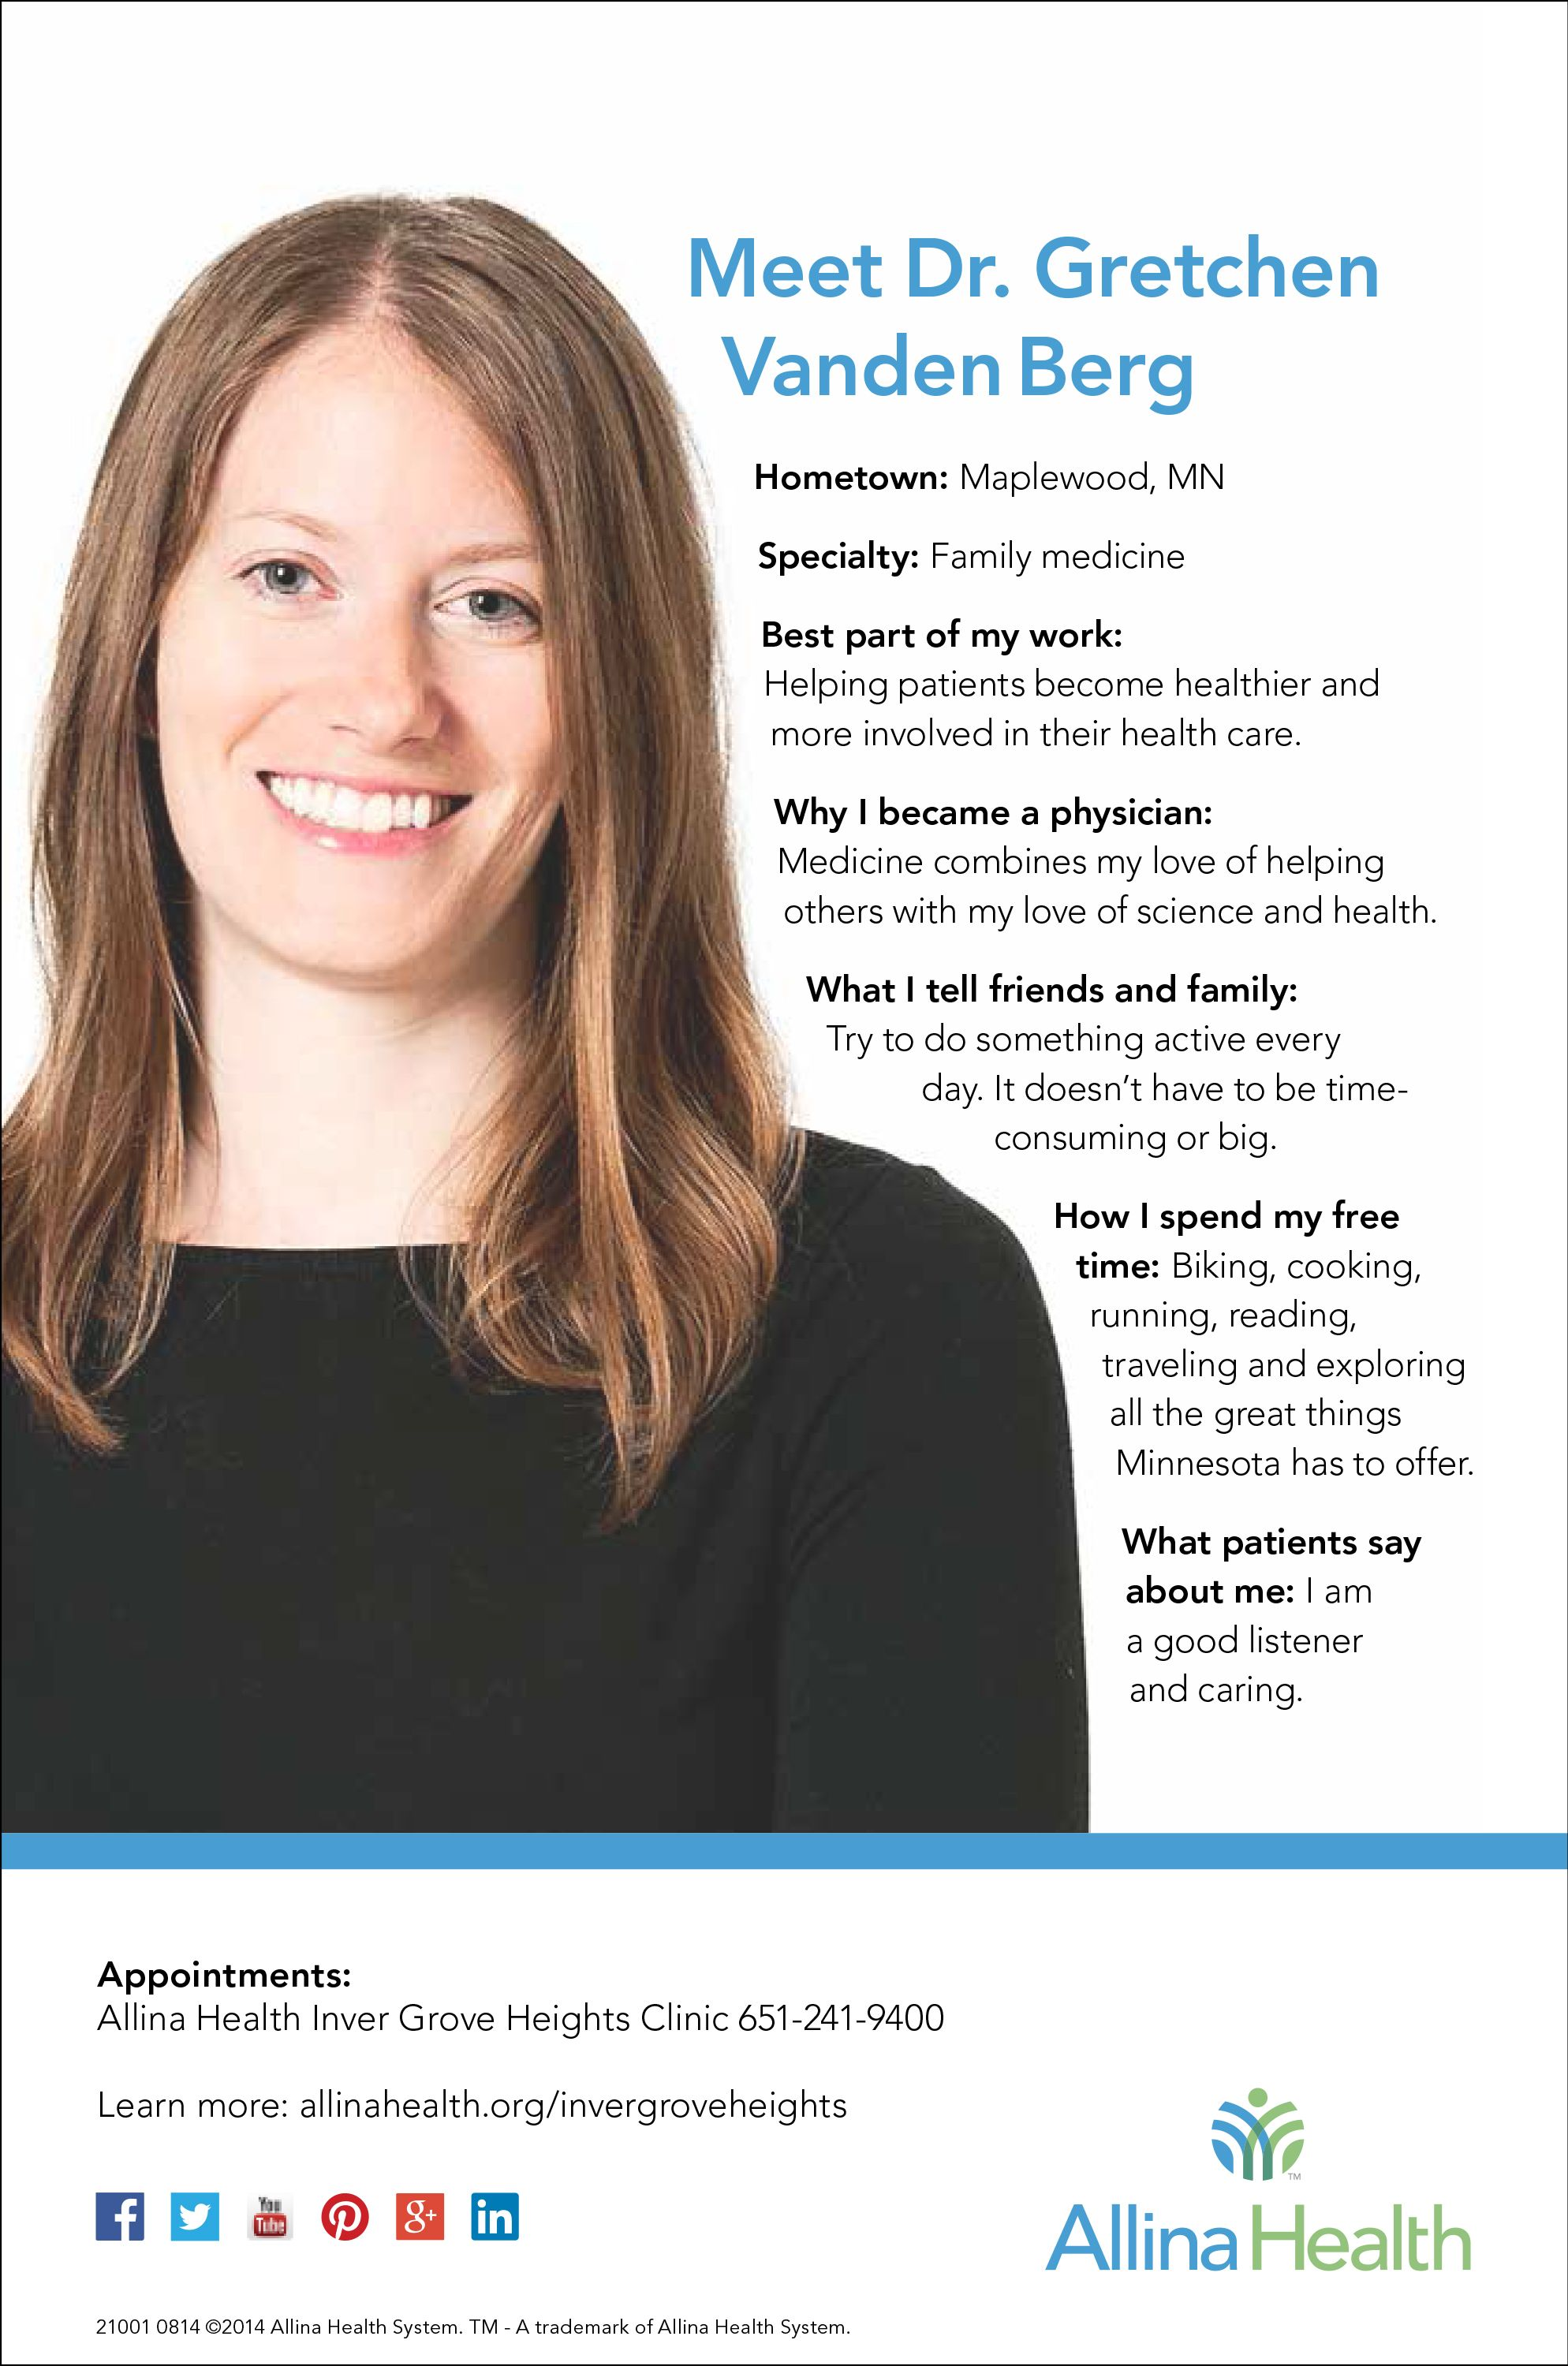 Meet Dr. Gretchen Vanden Berg. She is a family medicine doctor who sees patients at Allina Health Inver Grove Heights Clinic.